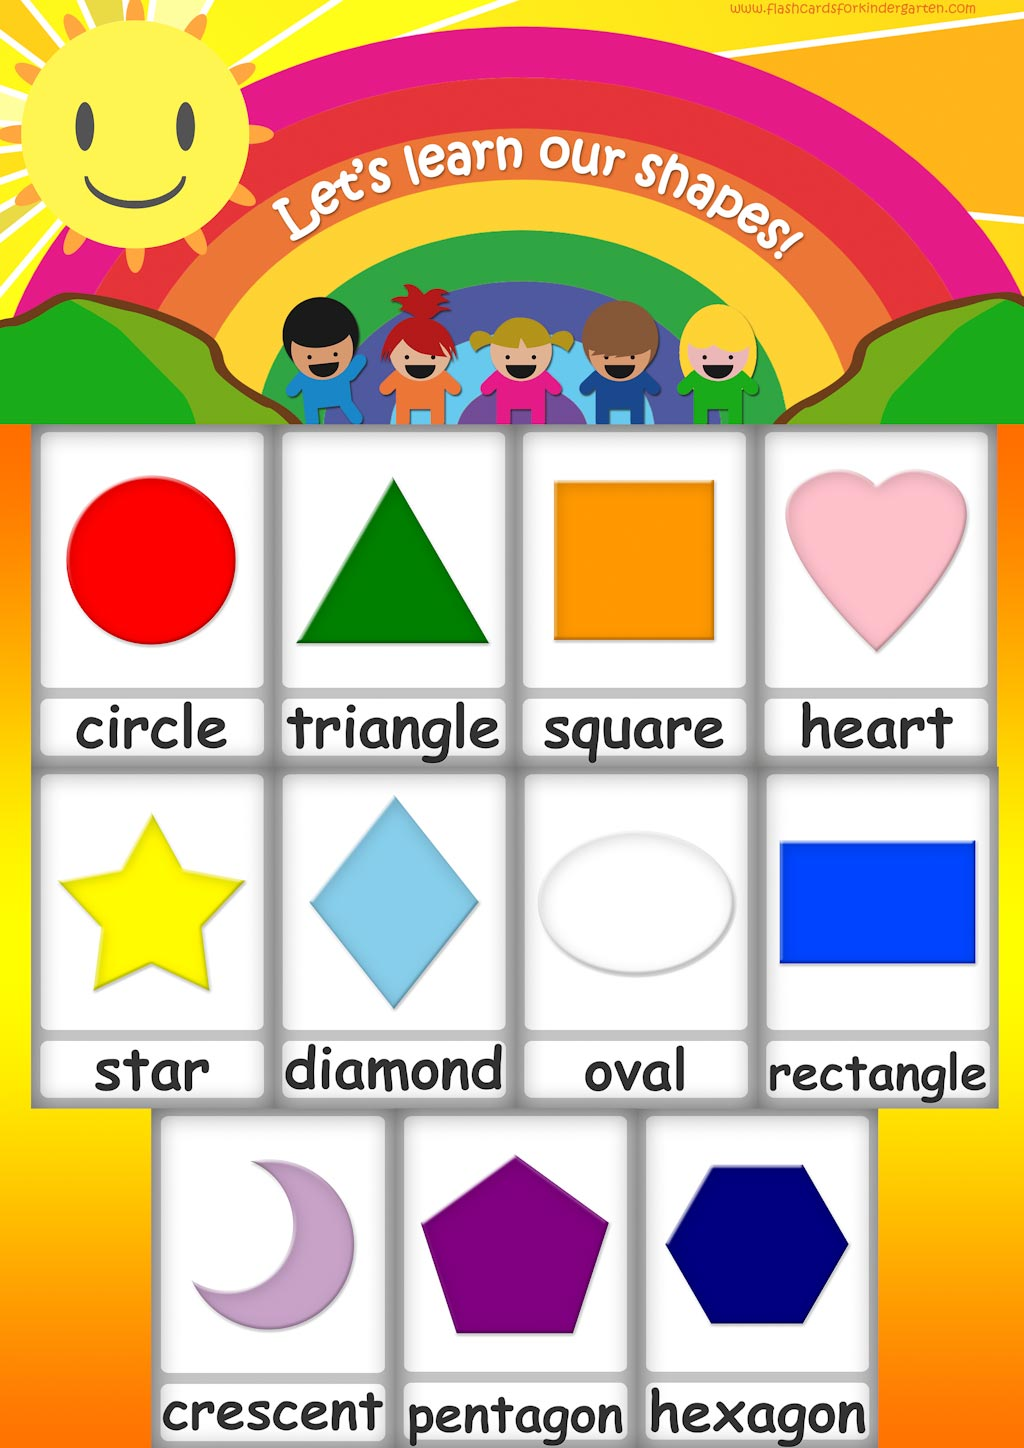 Shape Flashcards Teach Shapes Free Printable Flashcards Posters